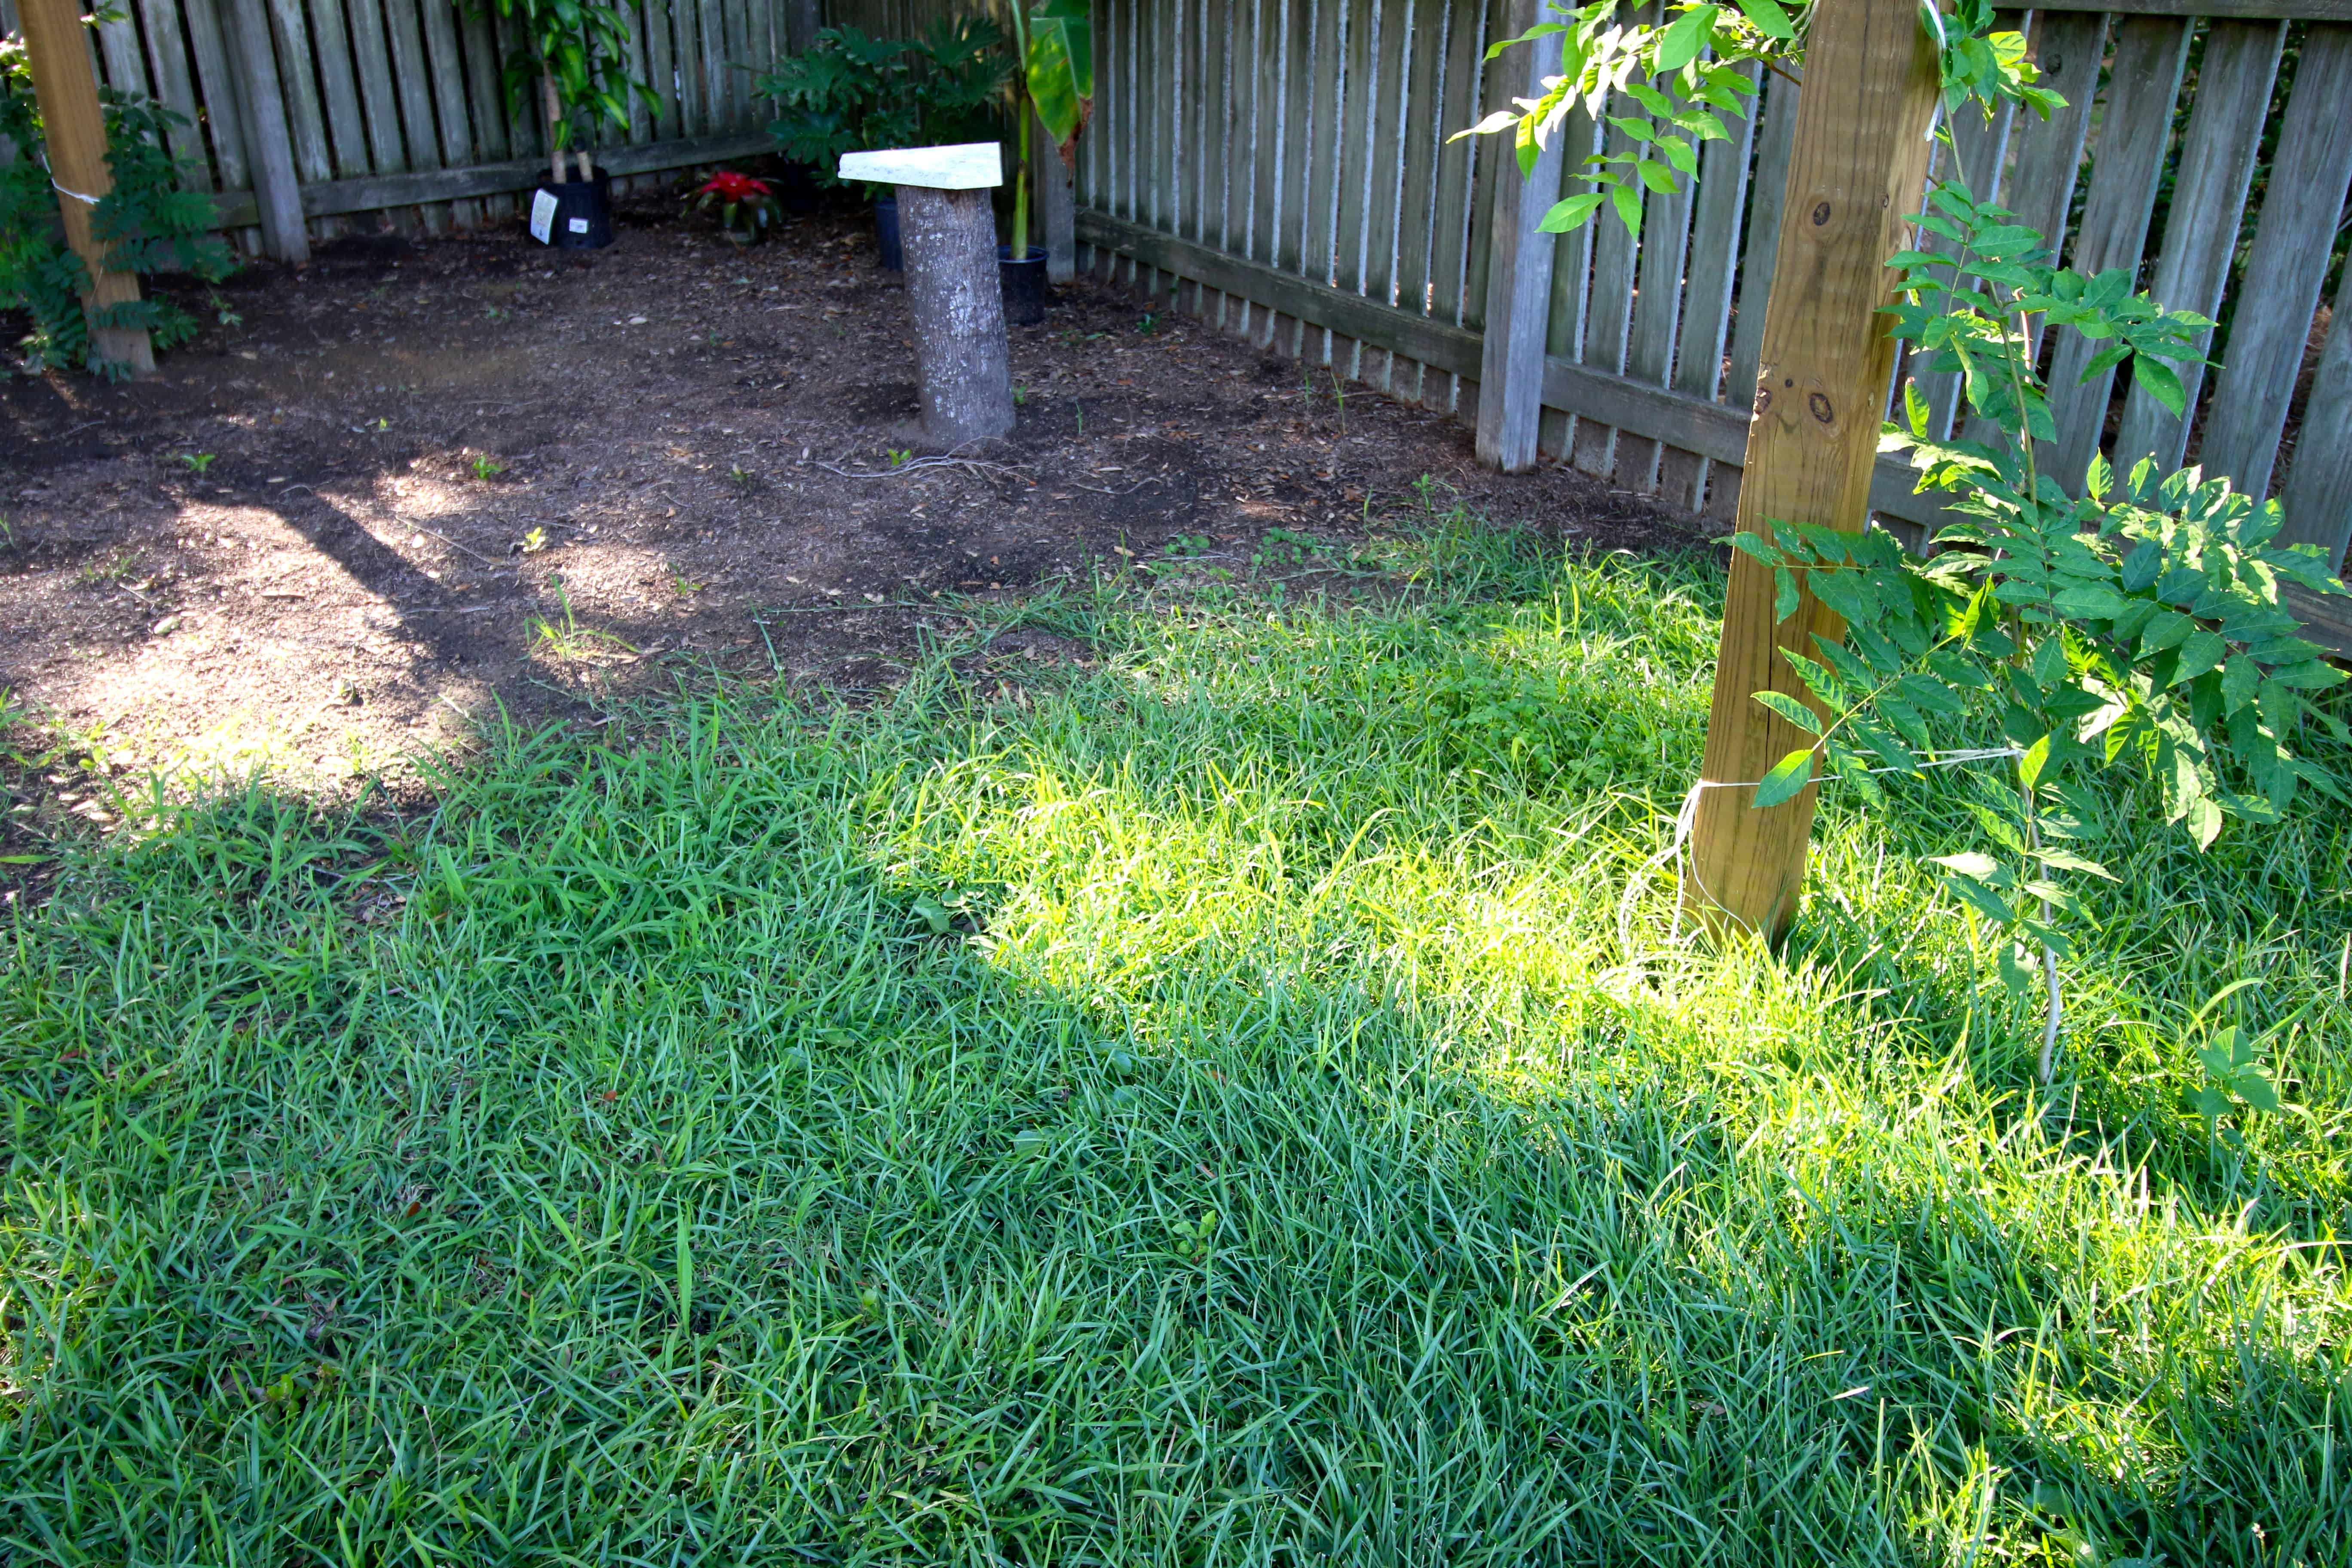 How to transplant grass